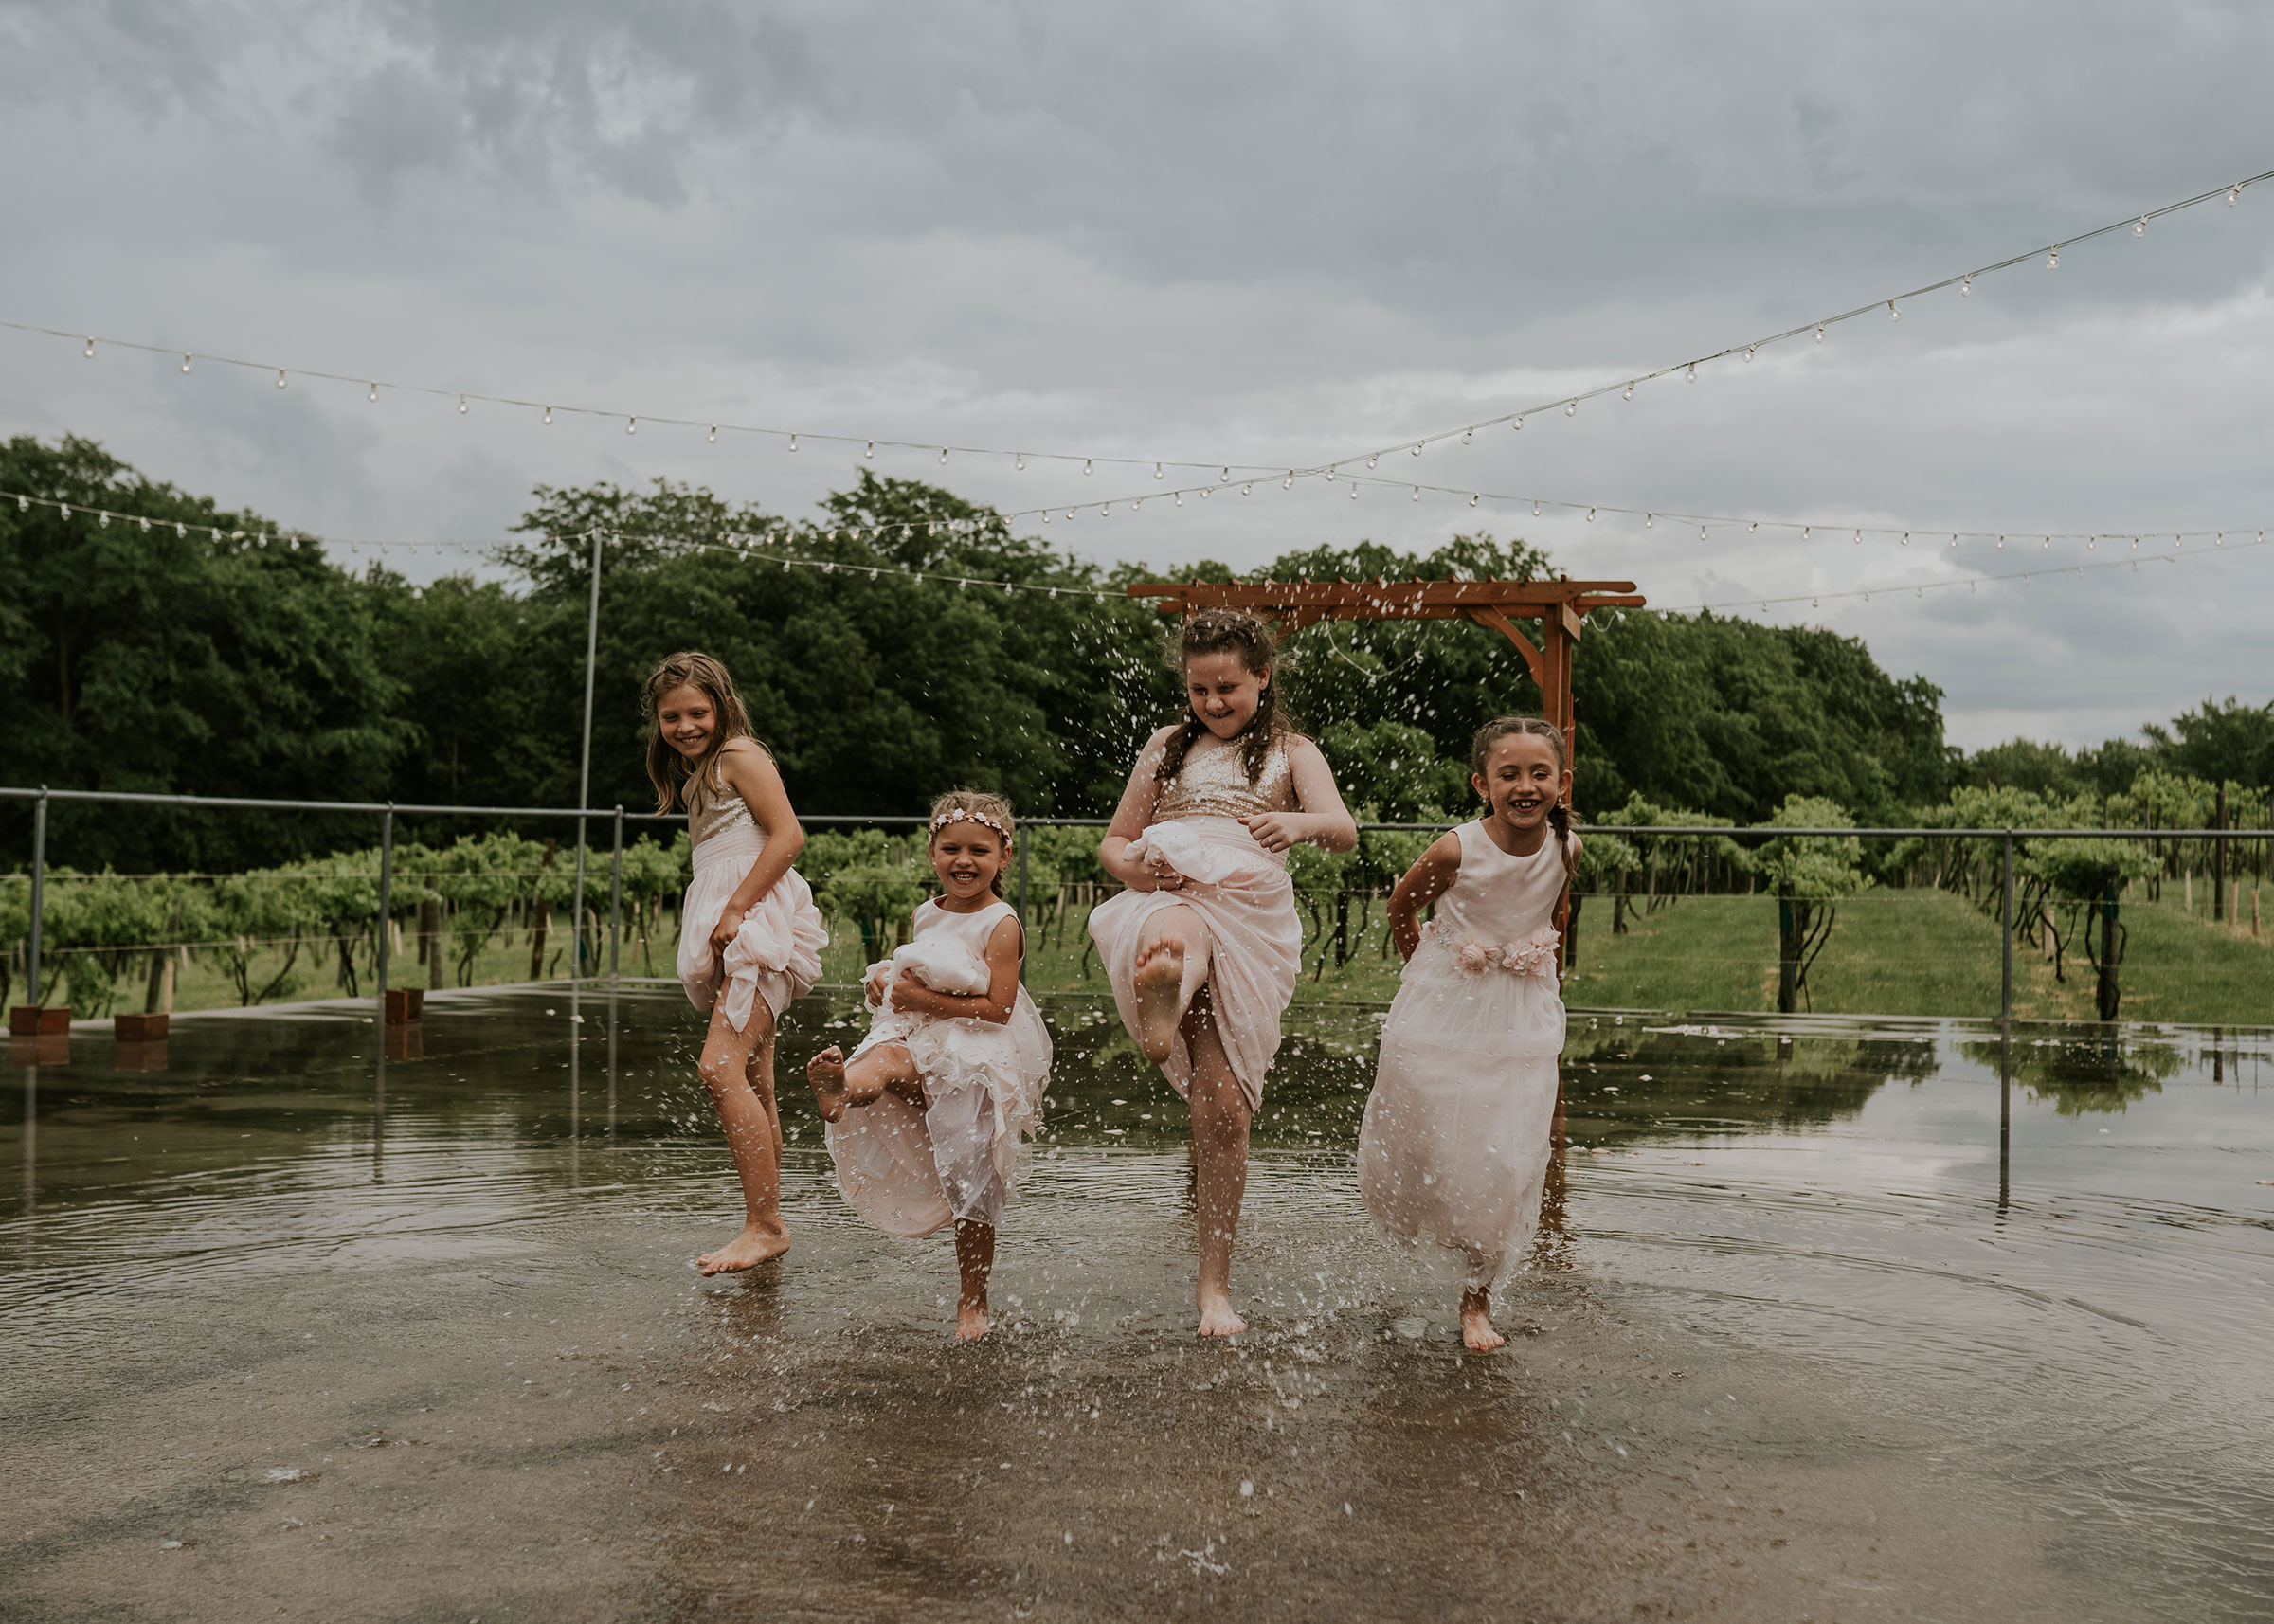 flower-girls-playing-in-rain-kicking-puddles-wedding-summerset-winery-indianola-iowa-raelyn-ramey-photography.jpg